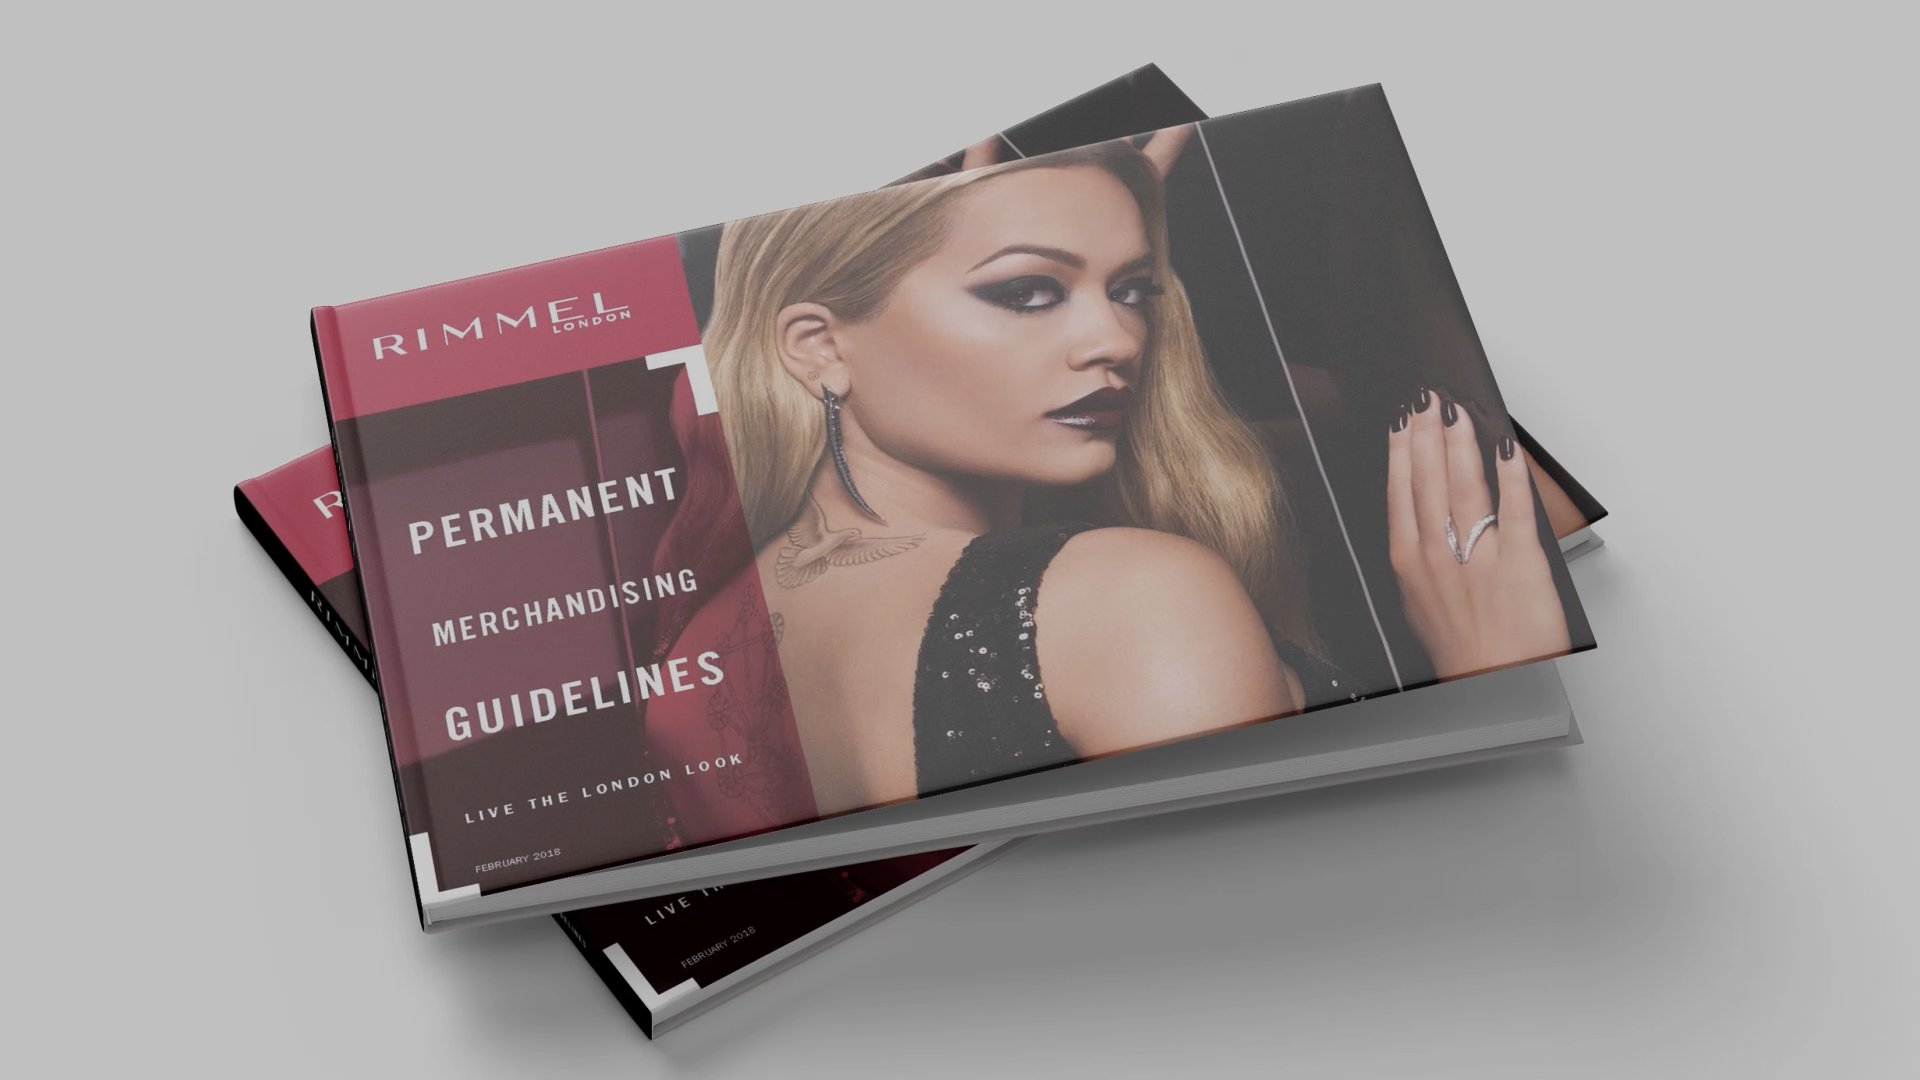 book cover with Rimmel branding